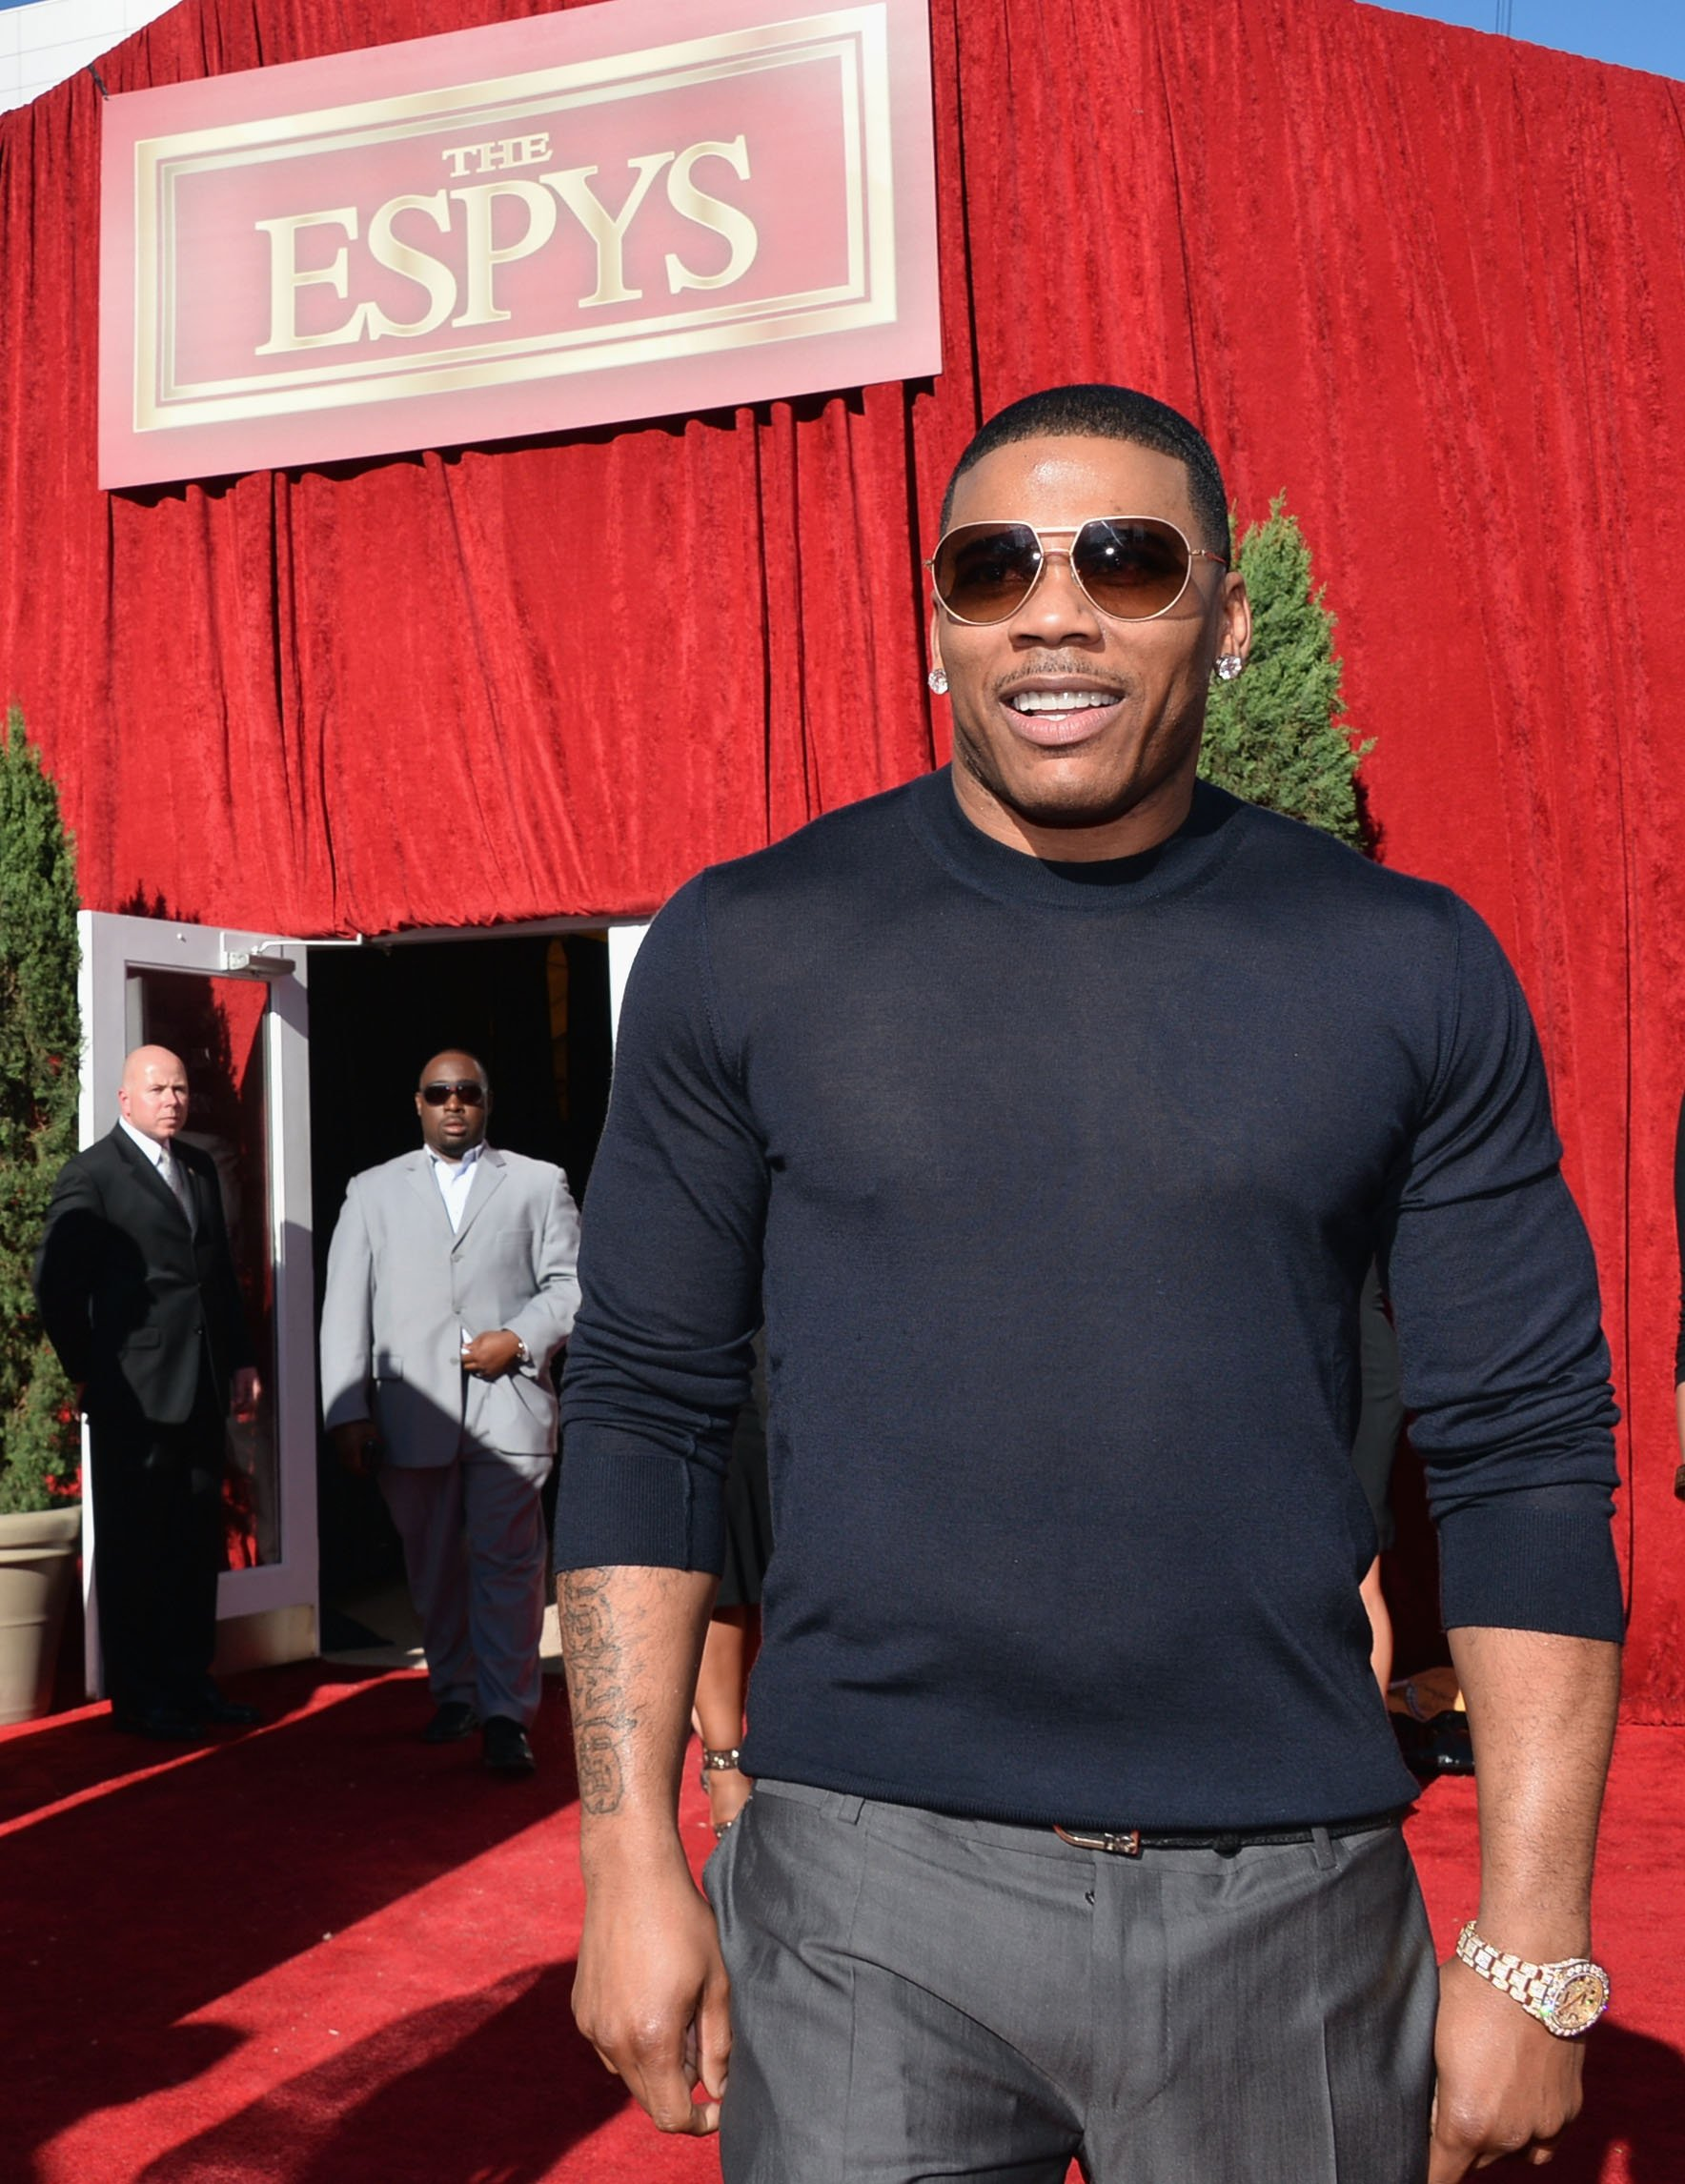 Cornell Nelly Haynes attends The 2013 ESPY Awards at Nokia Theatre L.A. Live on July 17, 2013 in Los Angeles, California | Photo: GettyImages